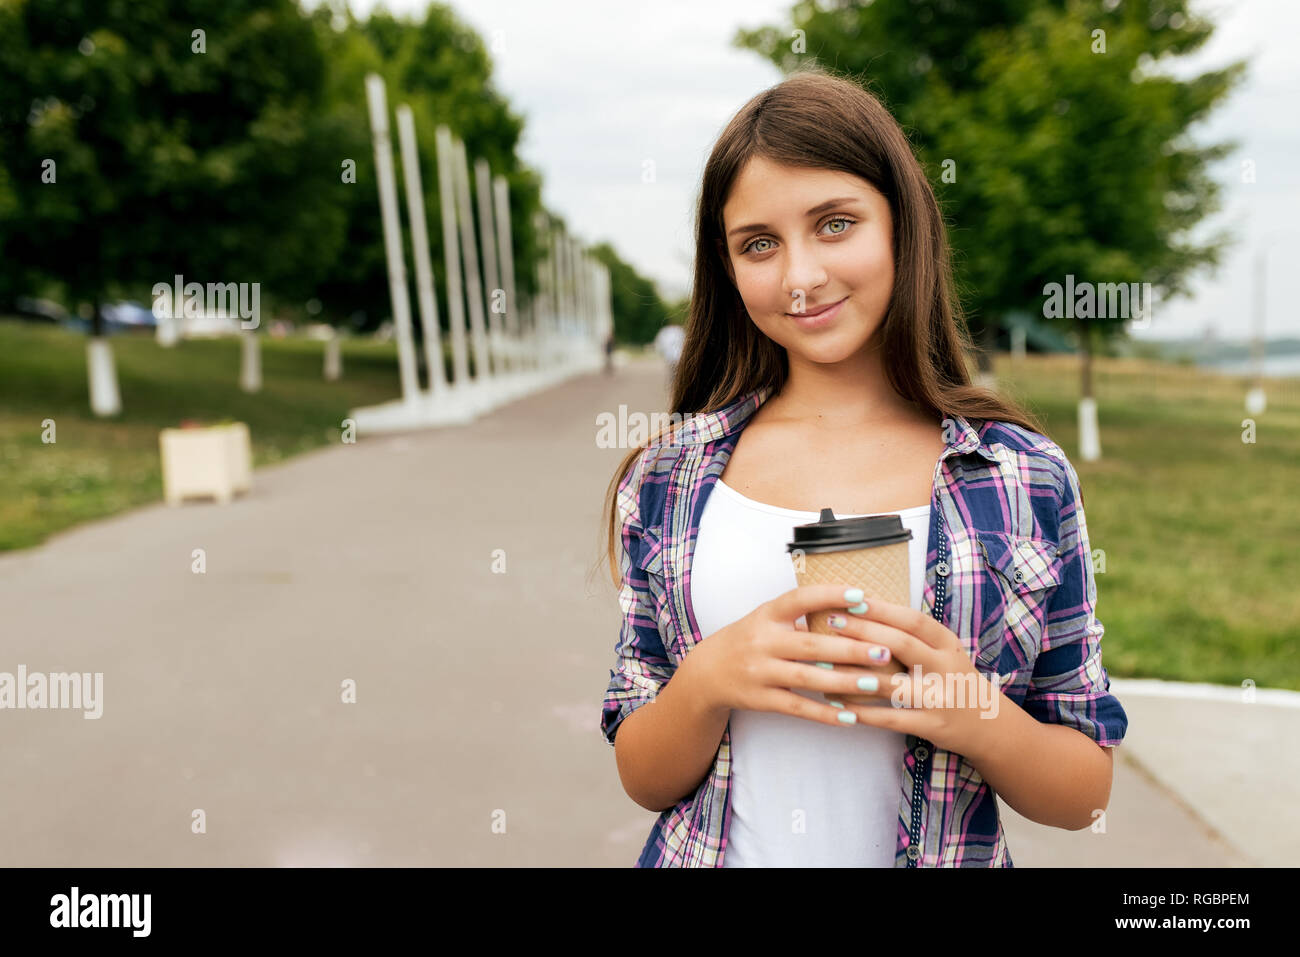 26db7c897d Beautiful Girl 14 Years Old Stock Photos   Beautiful Girl 14 Years ...